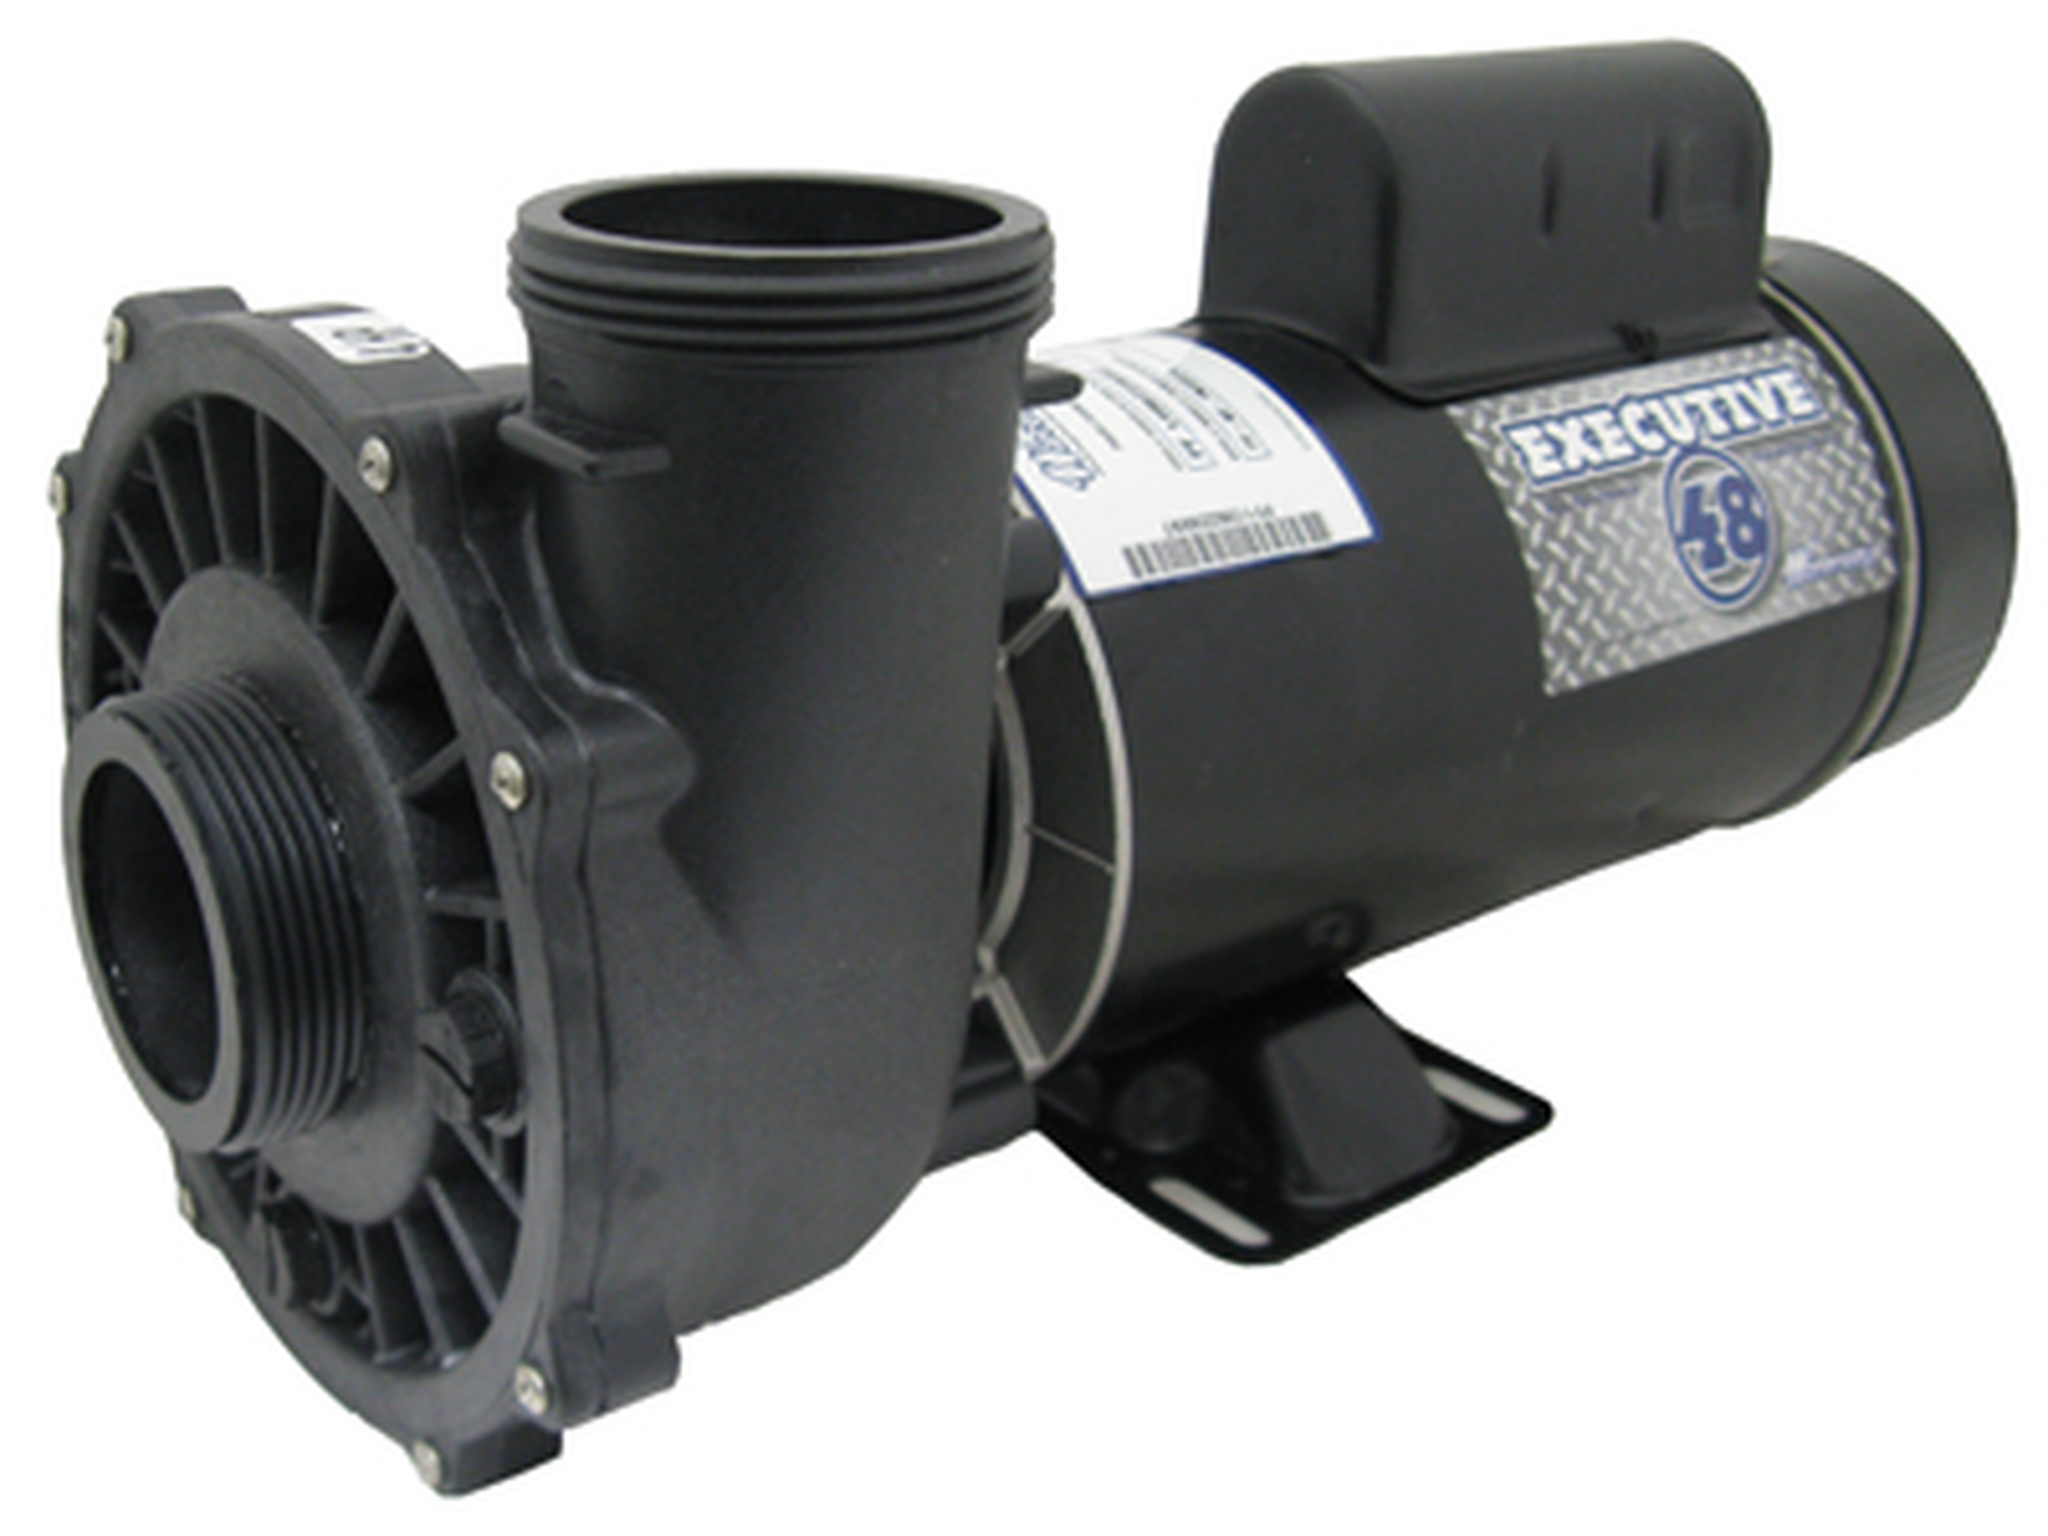 Waterway Executive 48 Pumps